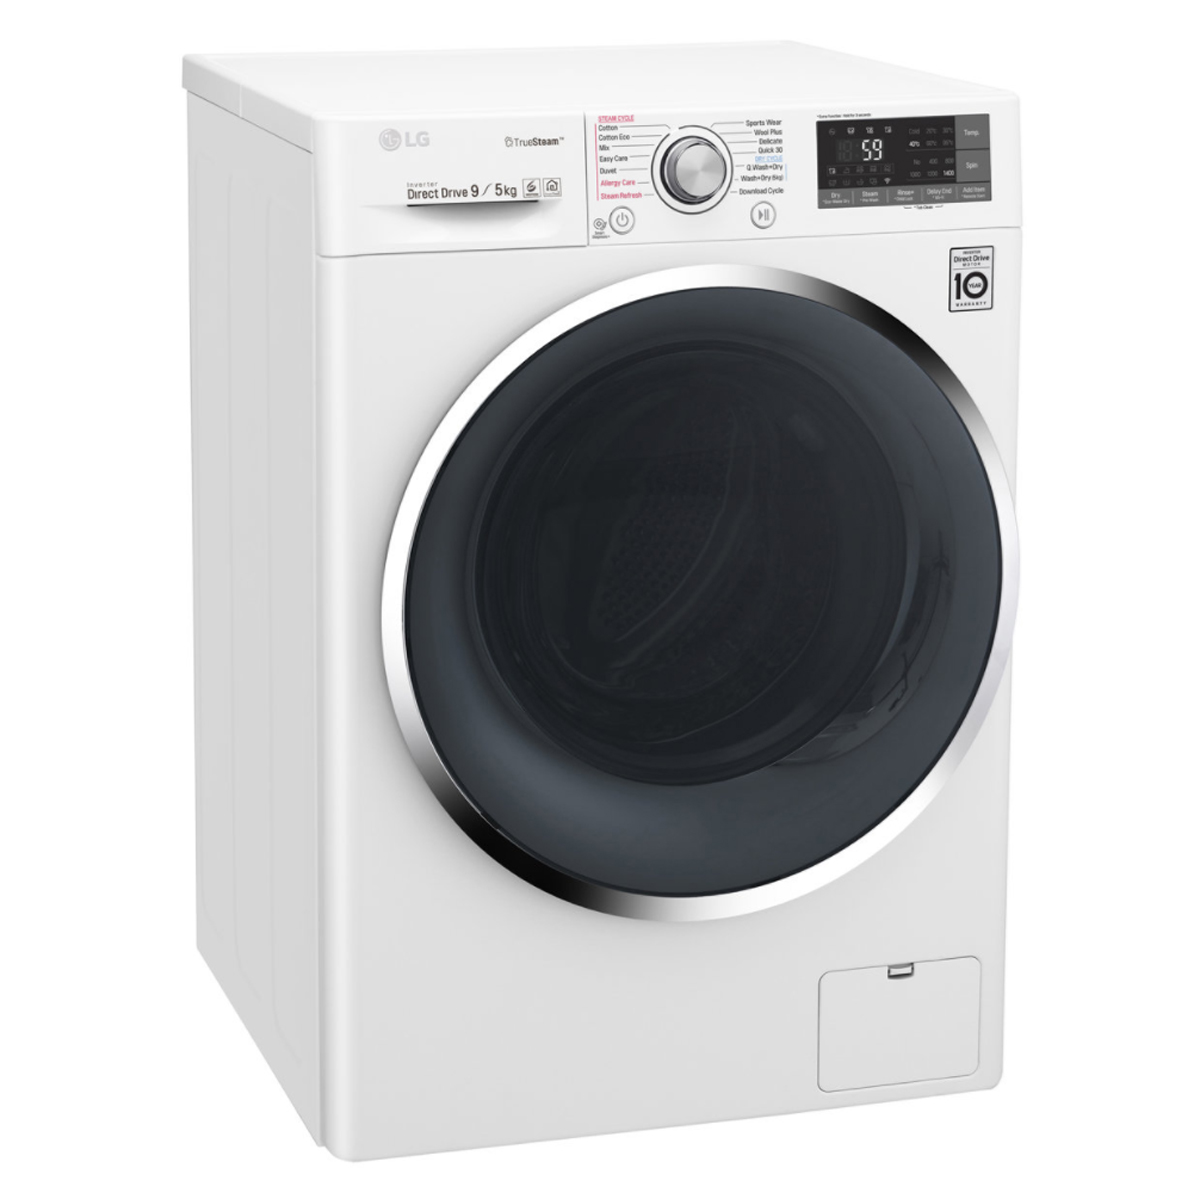 LG WDC1409HCW 9kg Washer 5kg Dryer Combo with True Steam® 168798